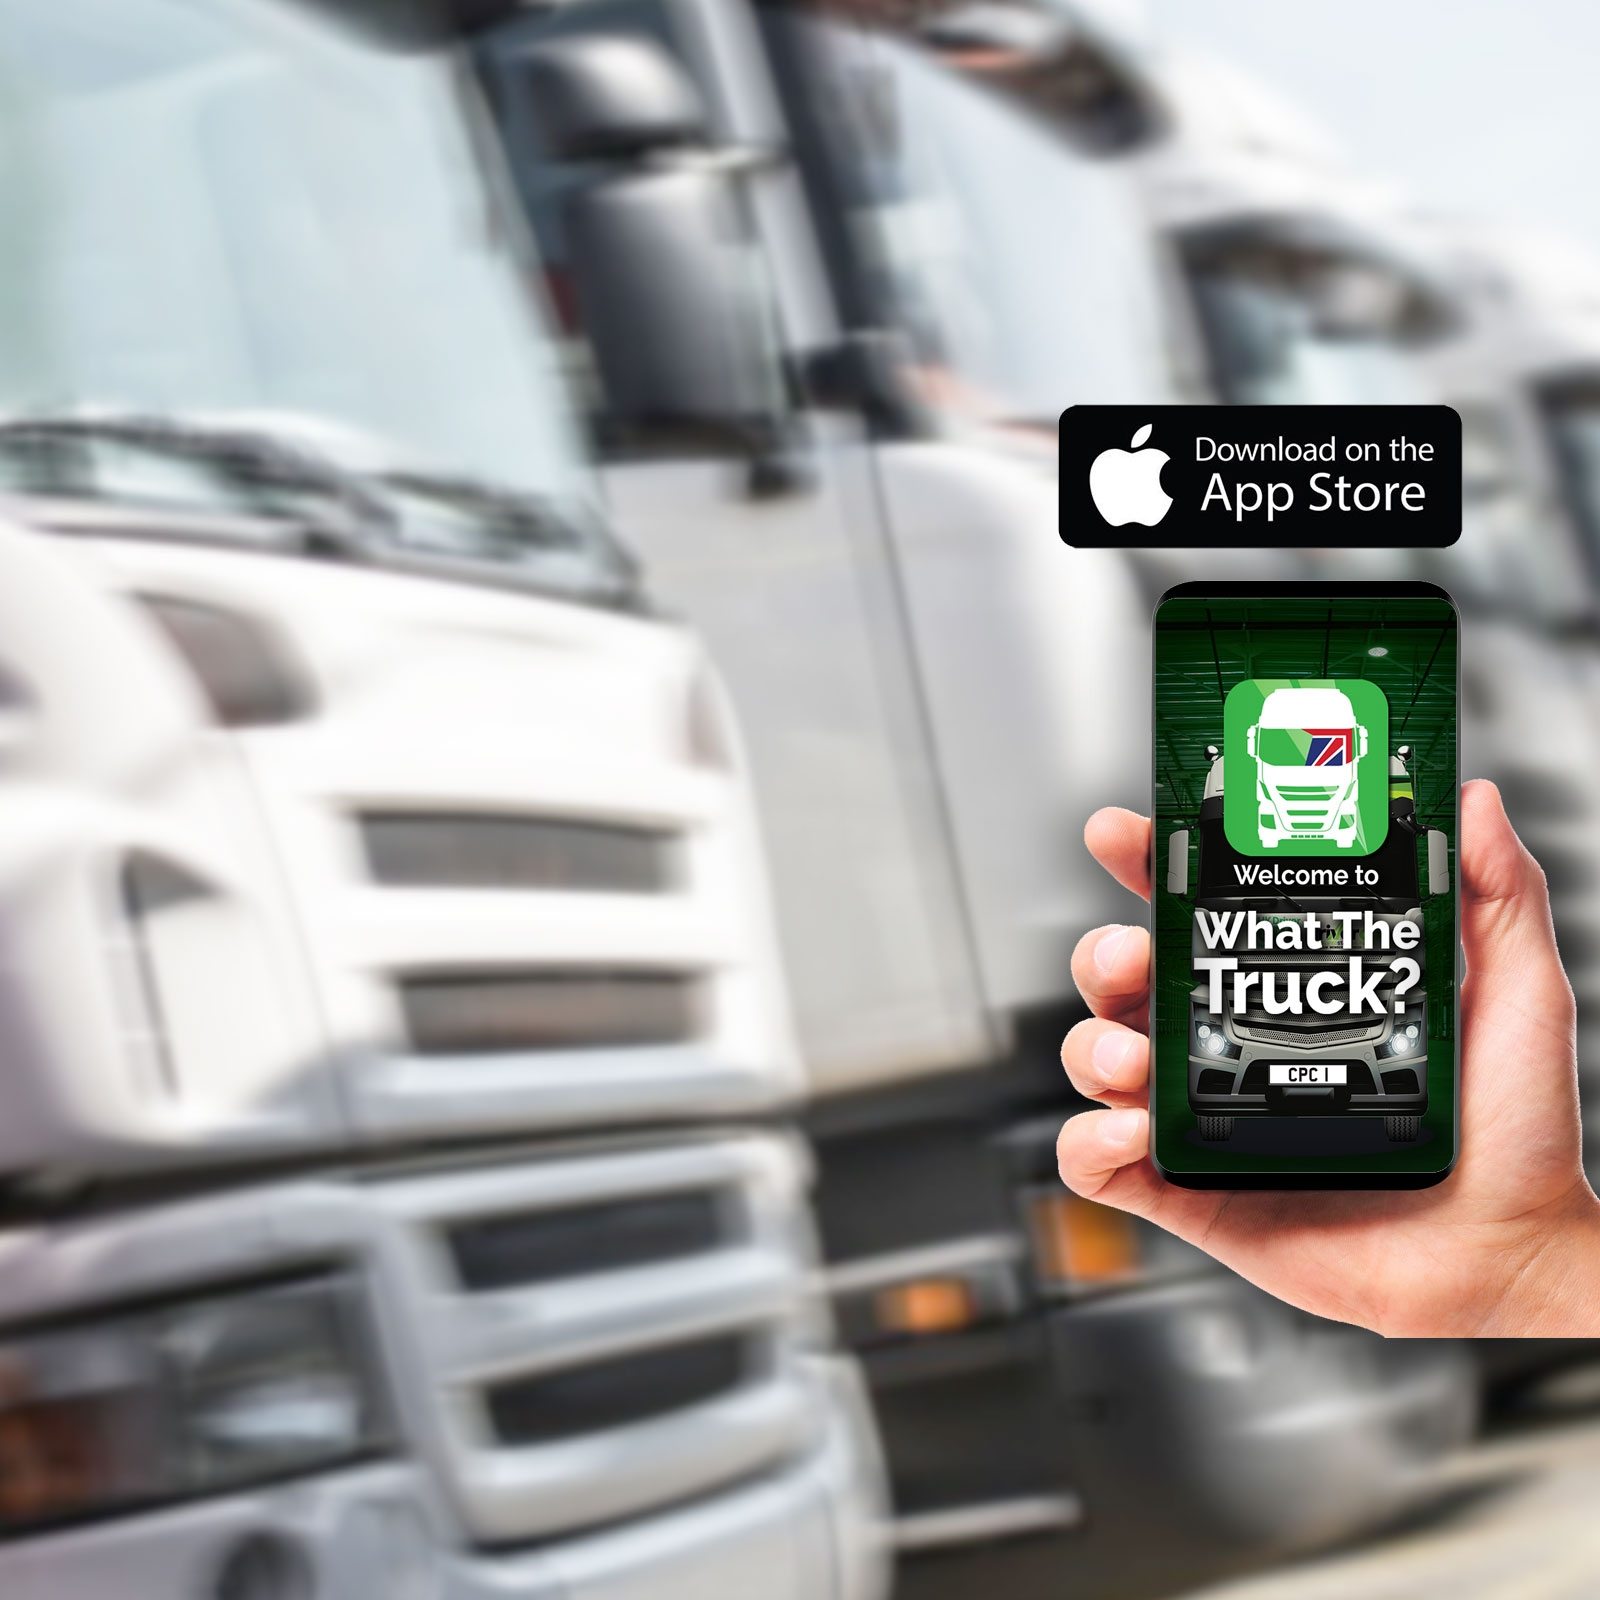 Available Now On iPhone! - Search for 'What The Truck' on App Store